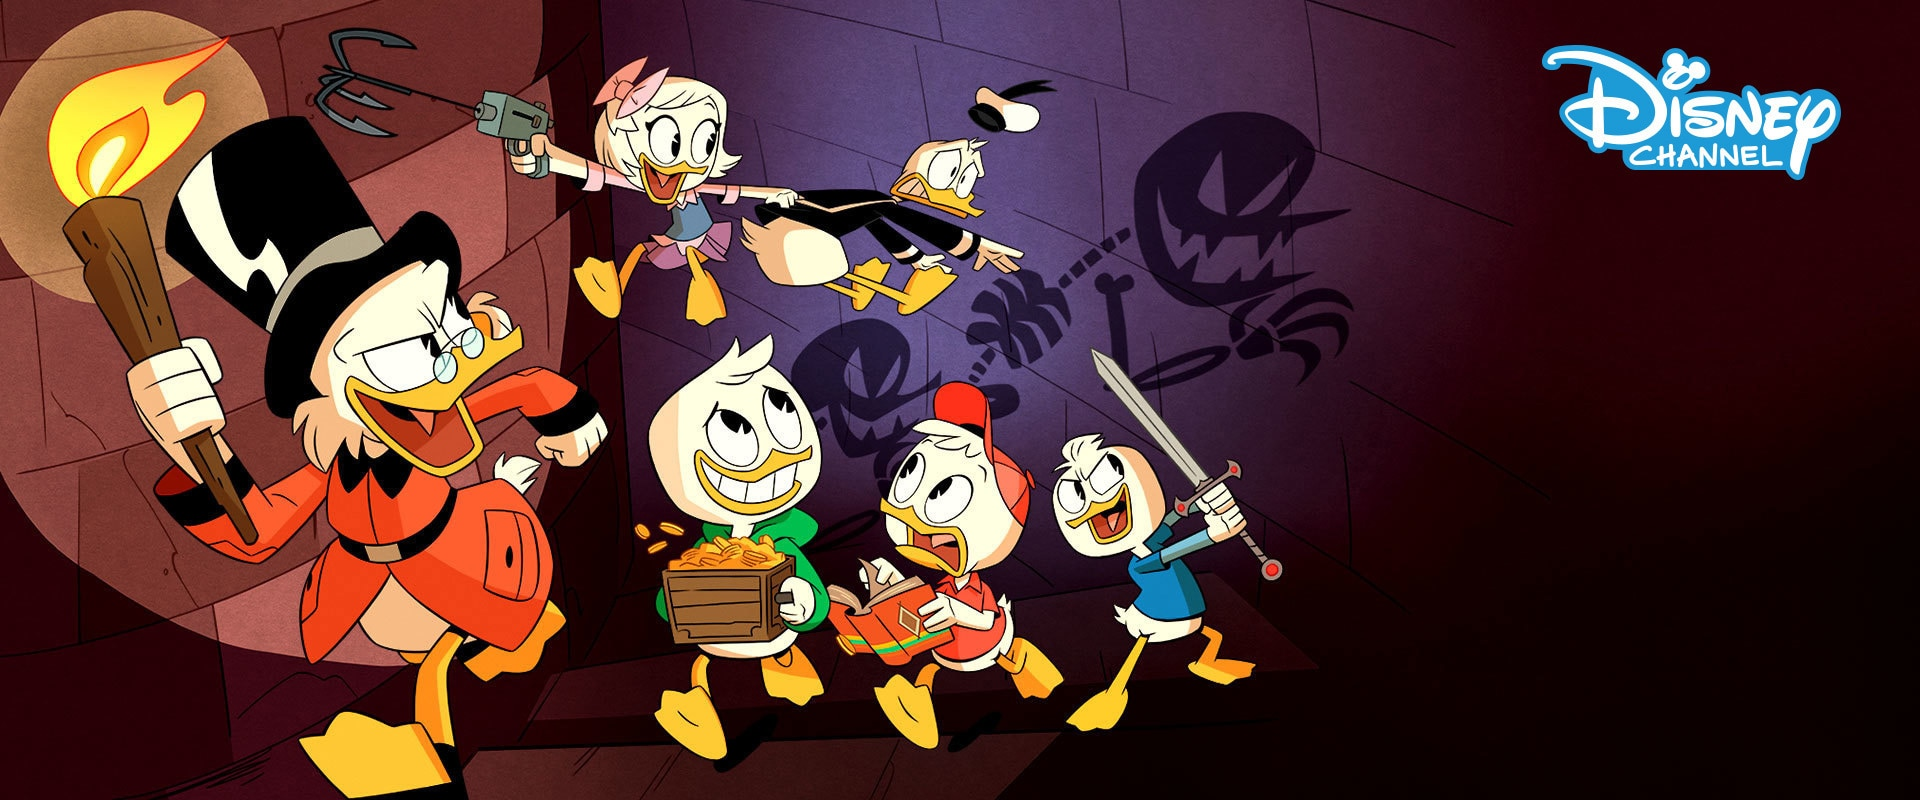 Ducktales - DC - Flex-Content Hero Object - video